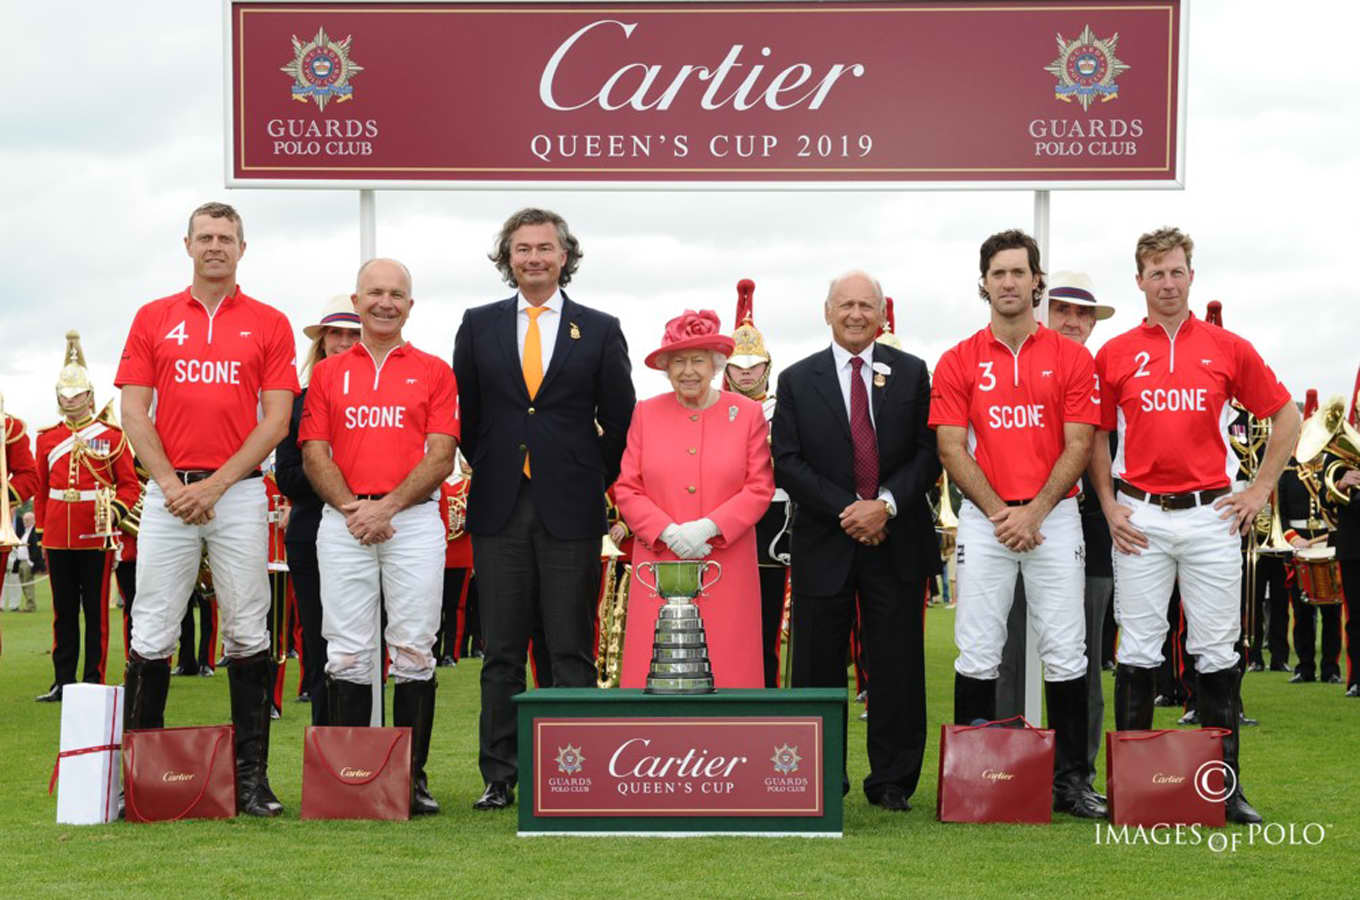 Scone Polo Lifts The Cartier Queen's Cup On Debut